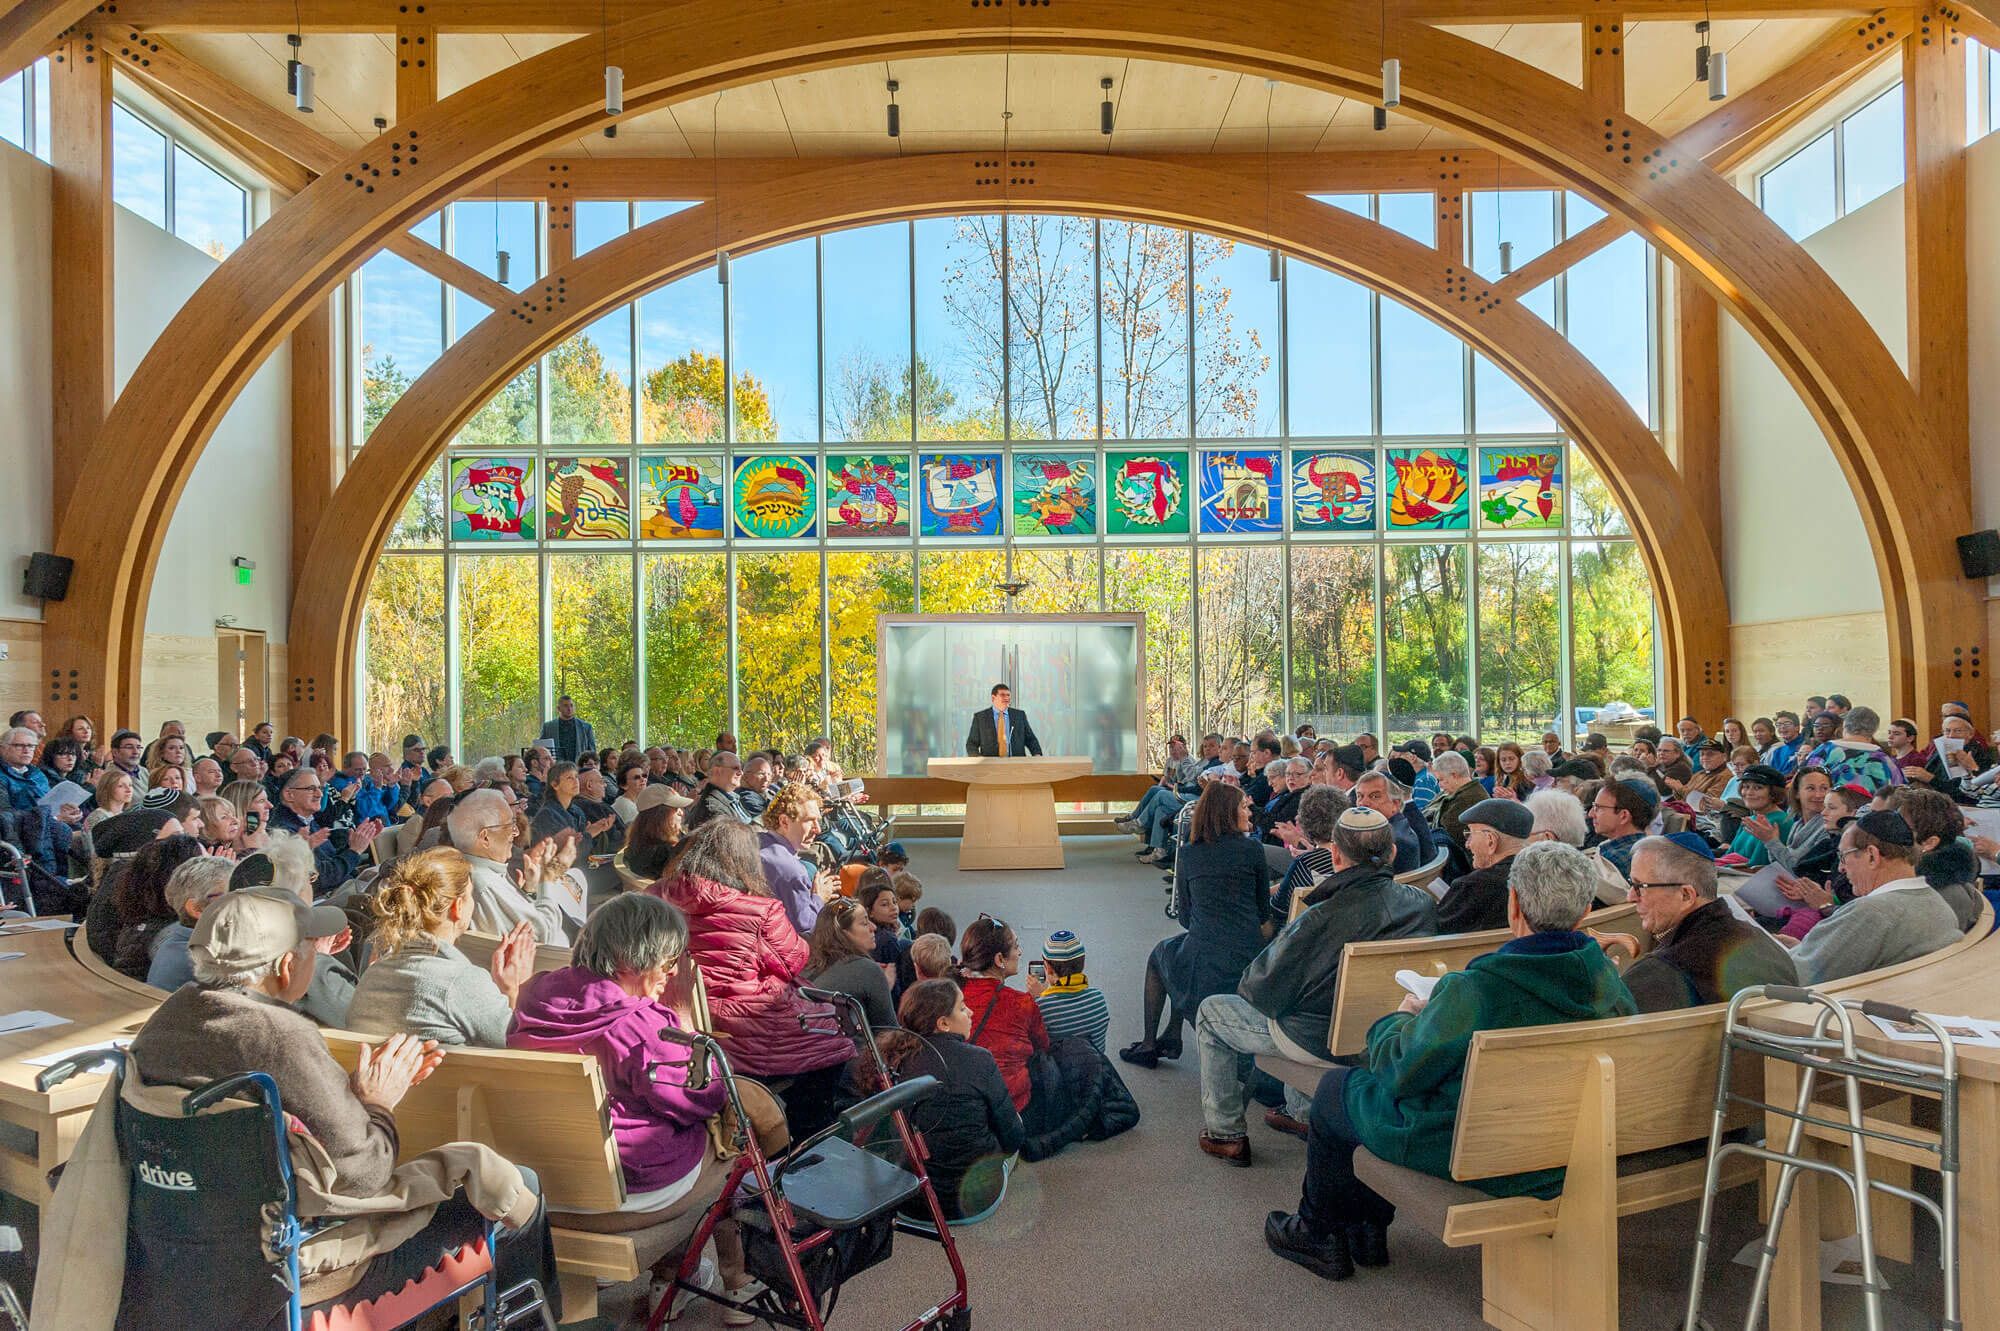 The congregation gathered on a bright spring day under the wooden arches in the sanctuary.